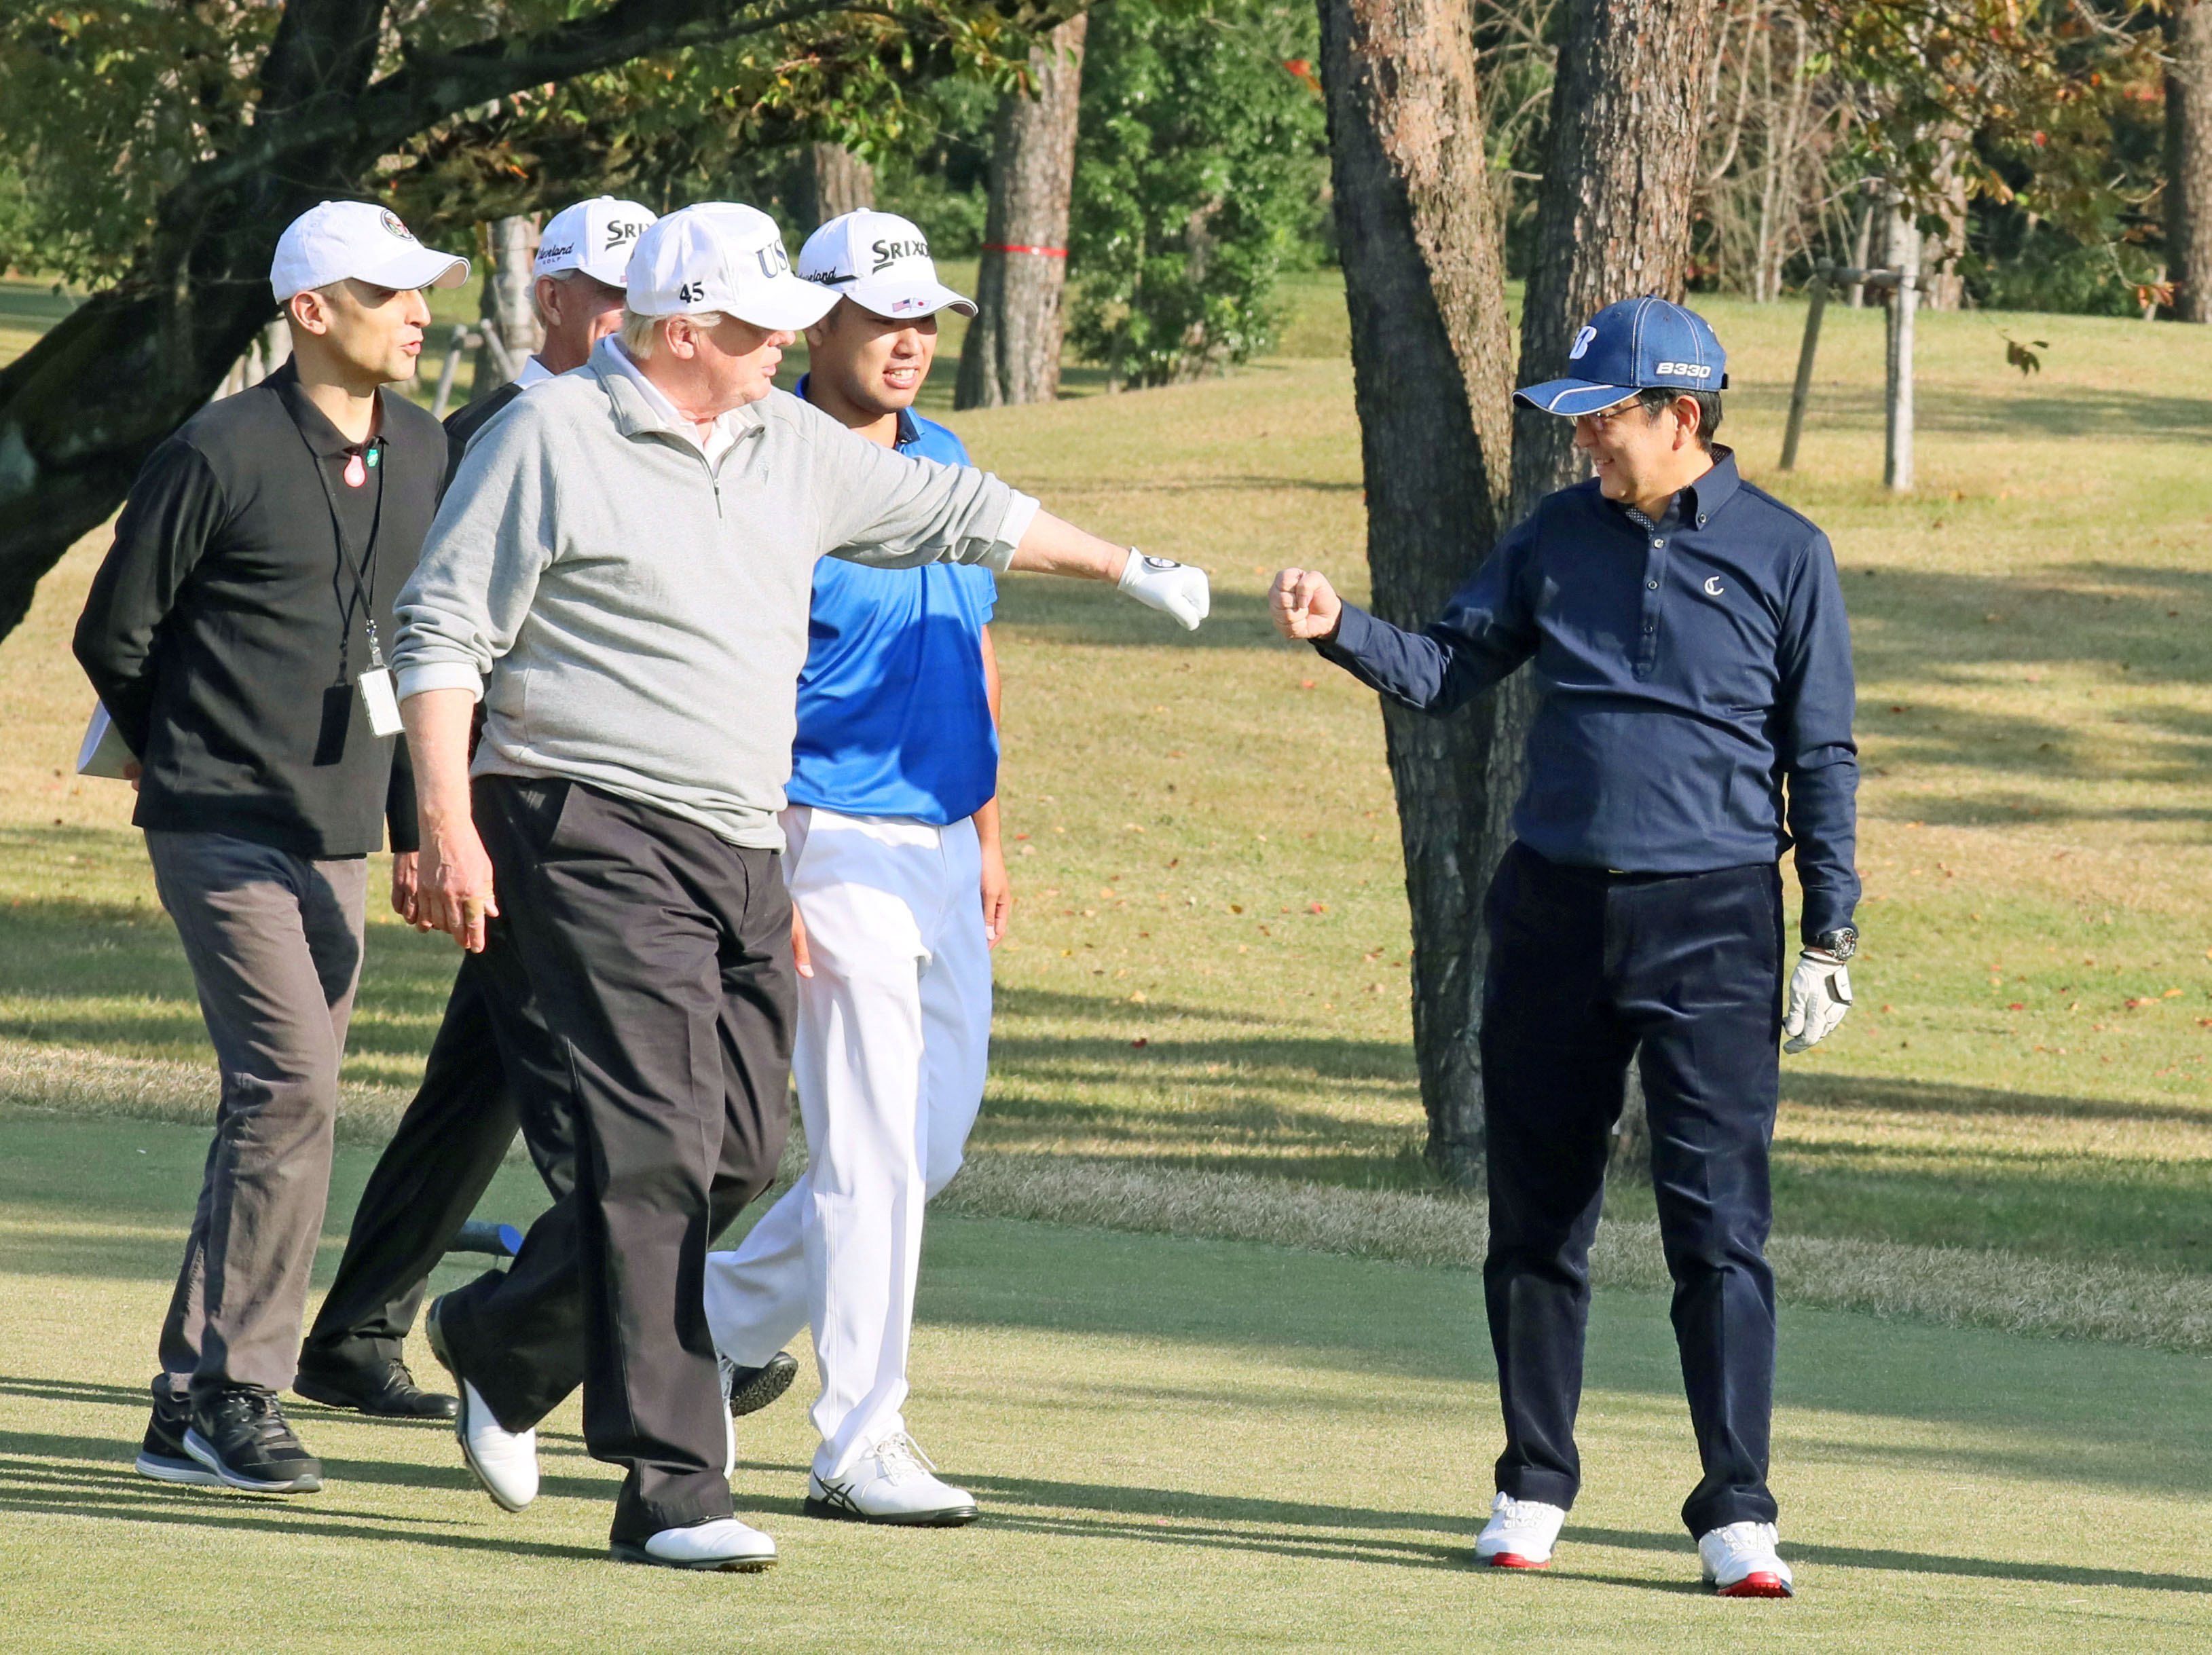 President Donald Trump share a fist bump with Japan's Prime Minister Shinzo Abe as they play golf at the Kasumigaseki Country Club north of Tokyo, Japan on Nov. 5, 2017.